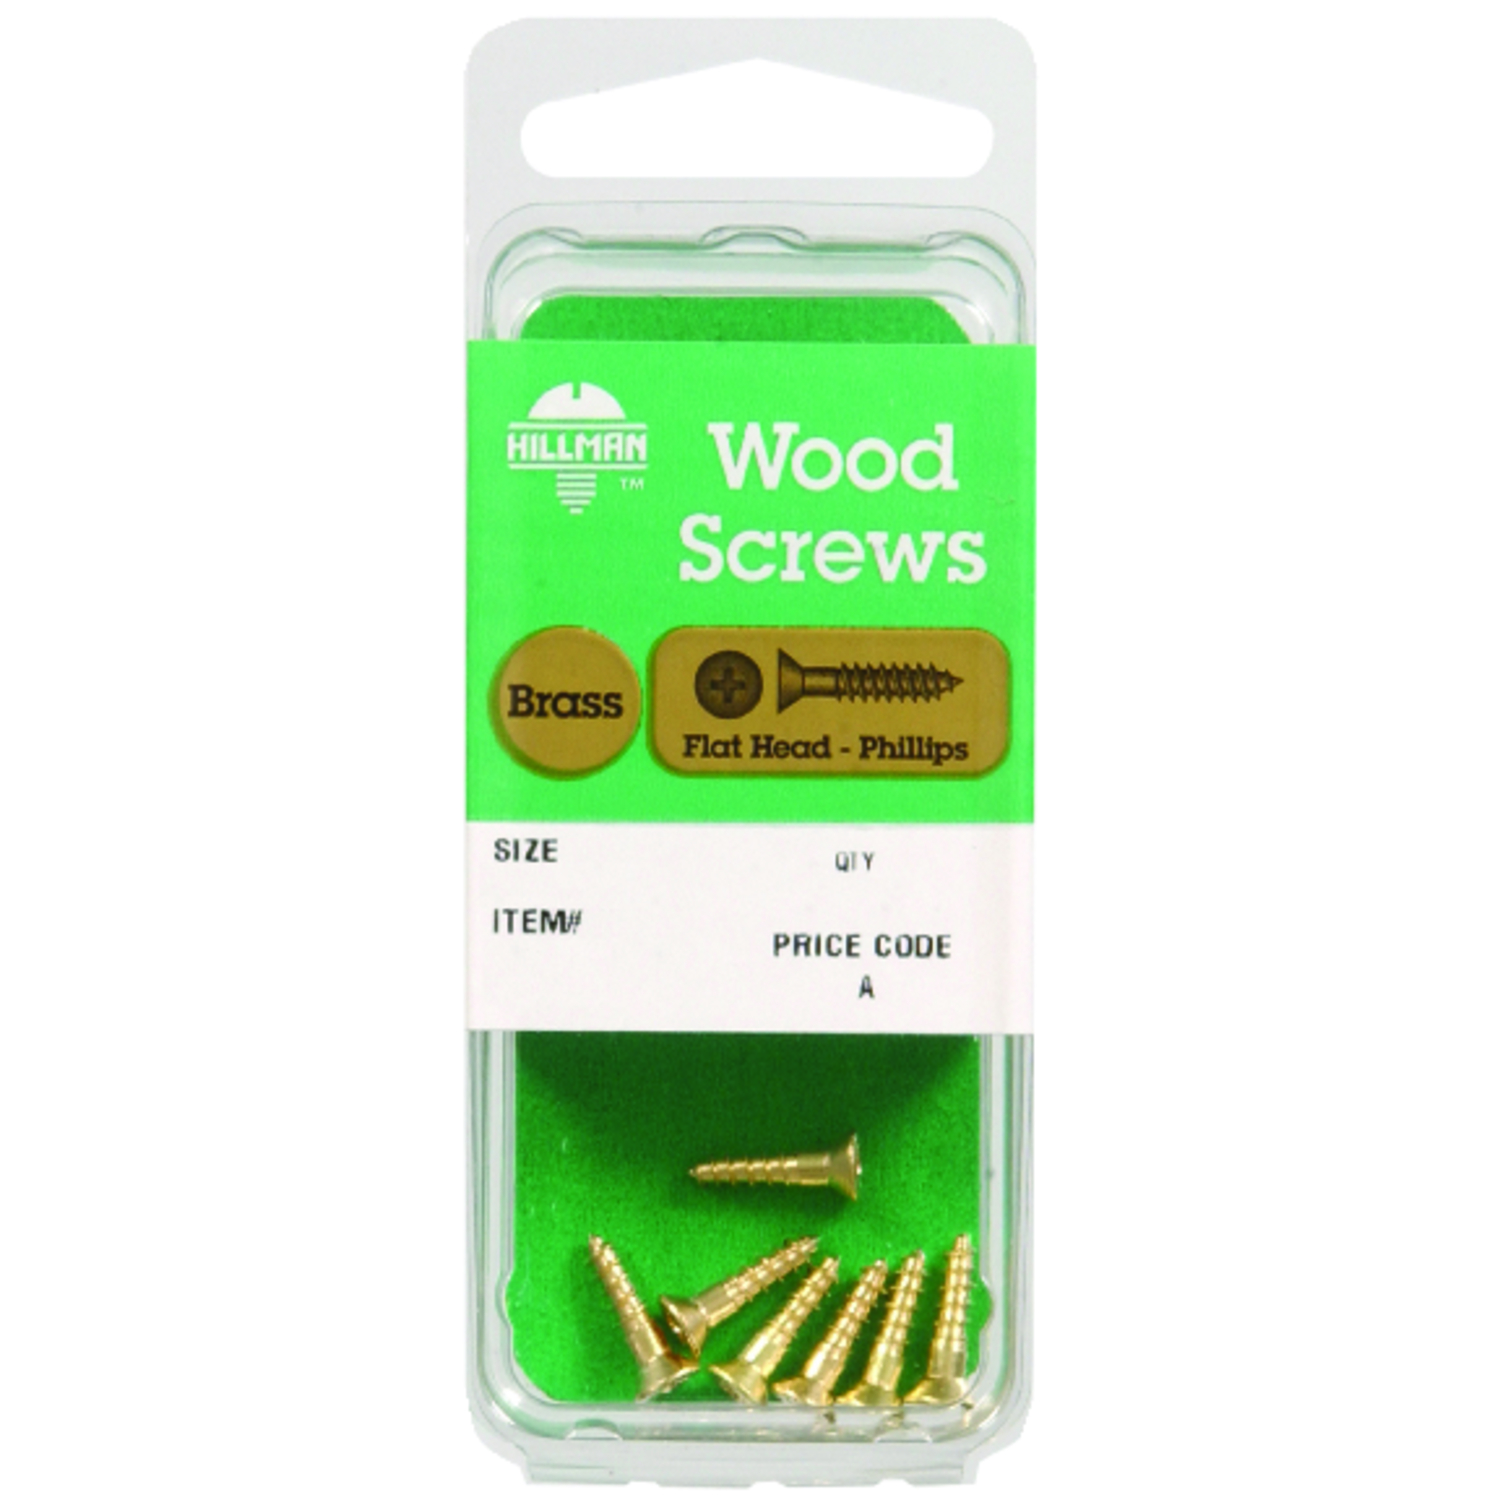 HILLMAN  No. 8   x 2 in. L Phillips  Flat  Brass  Wood Screws  2 pk